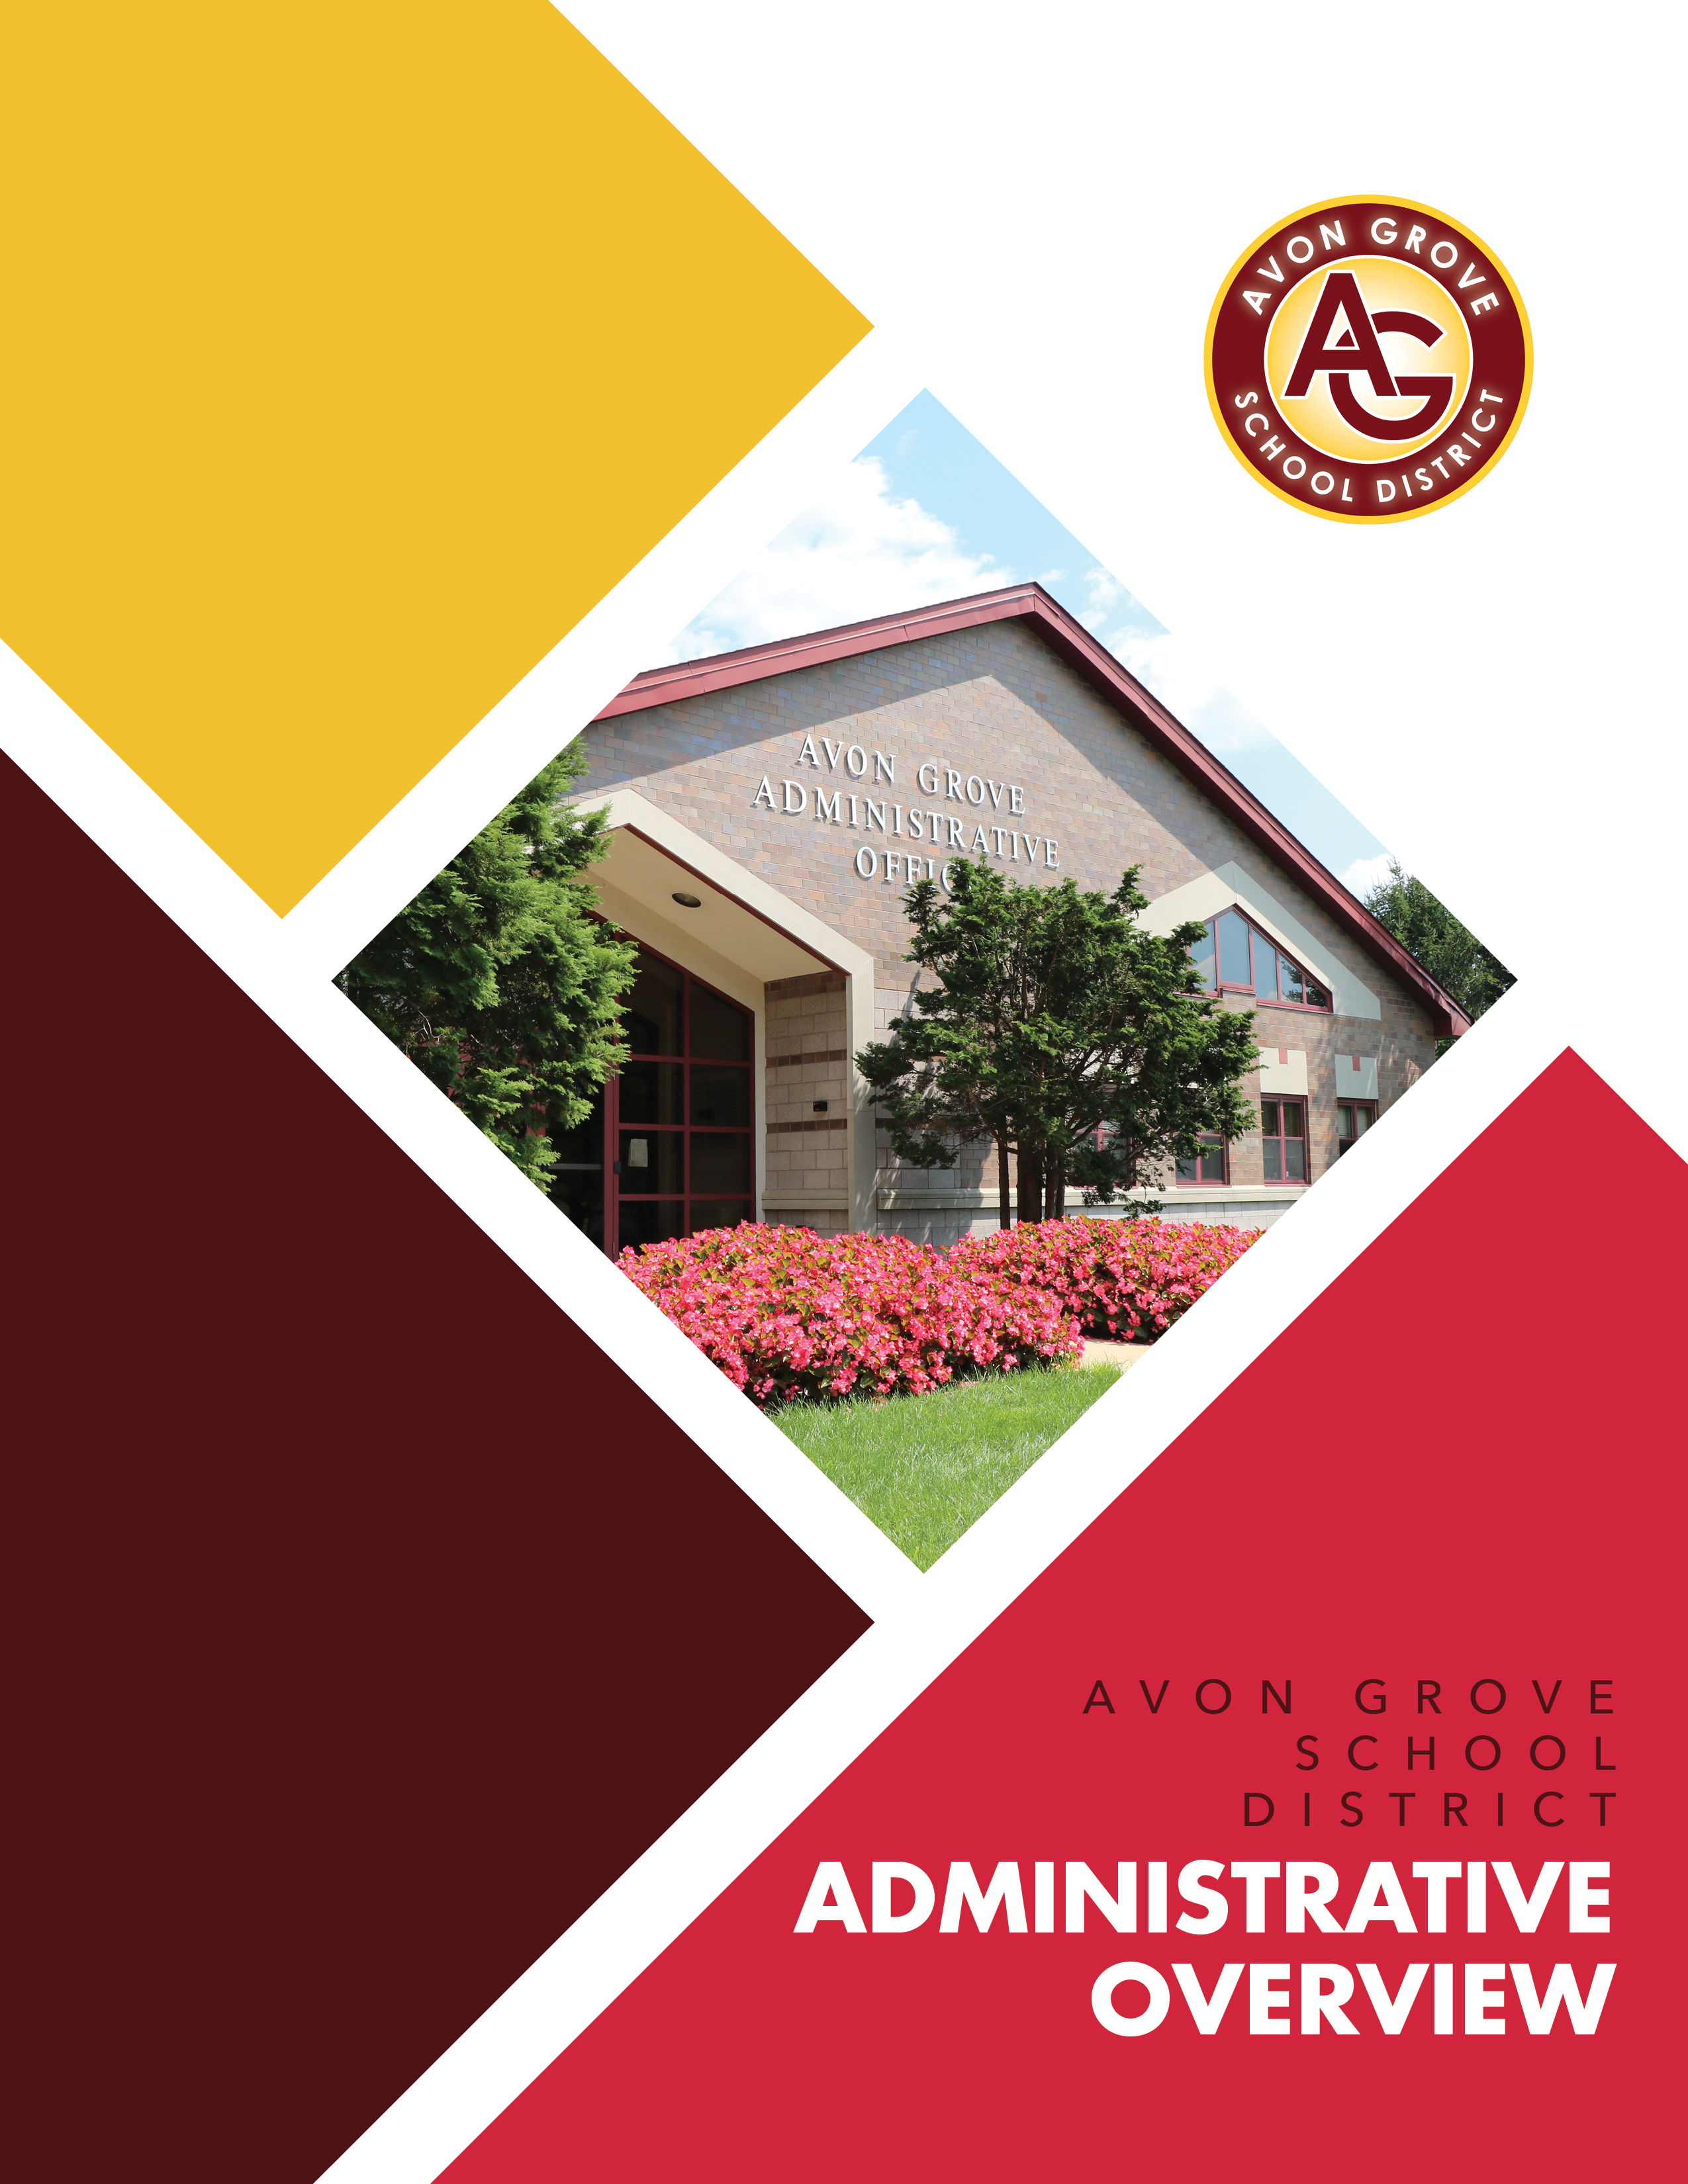 Avon Grove Administrative Overview